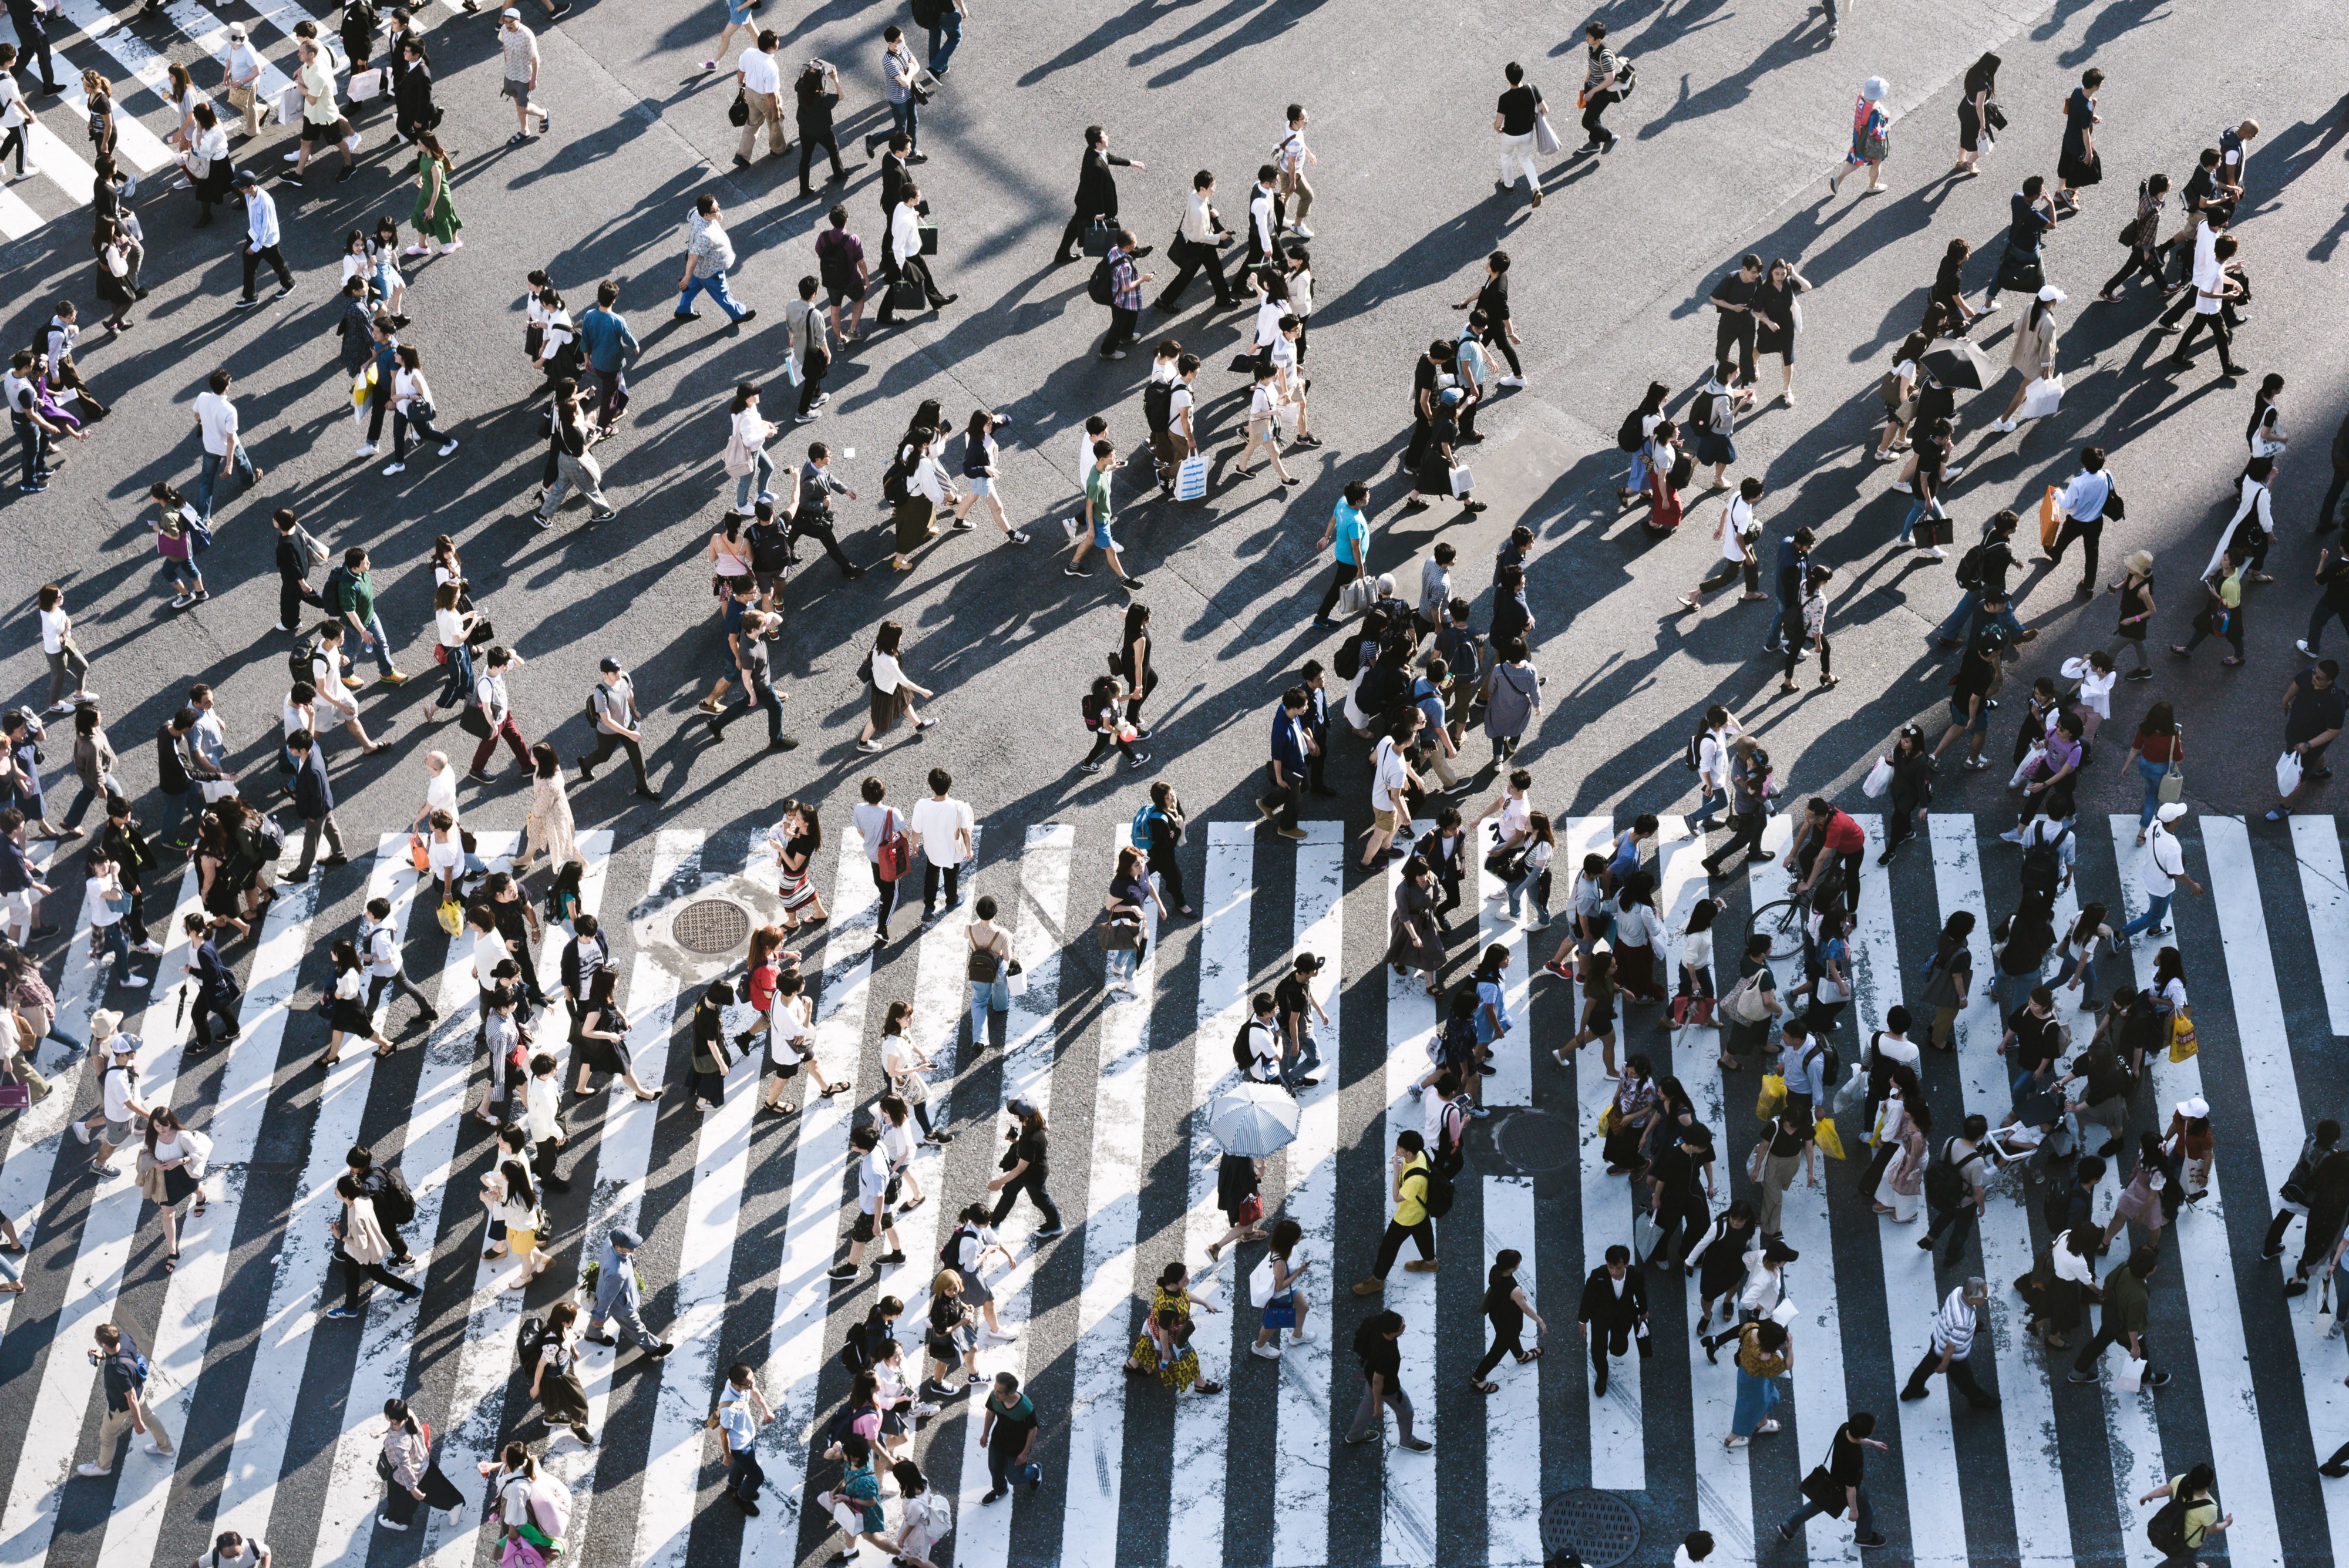 Crowded intersection in Japan